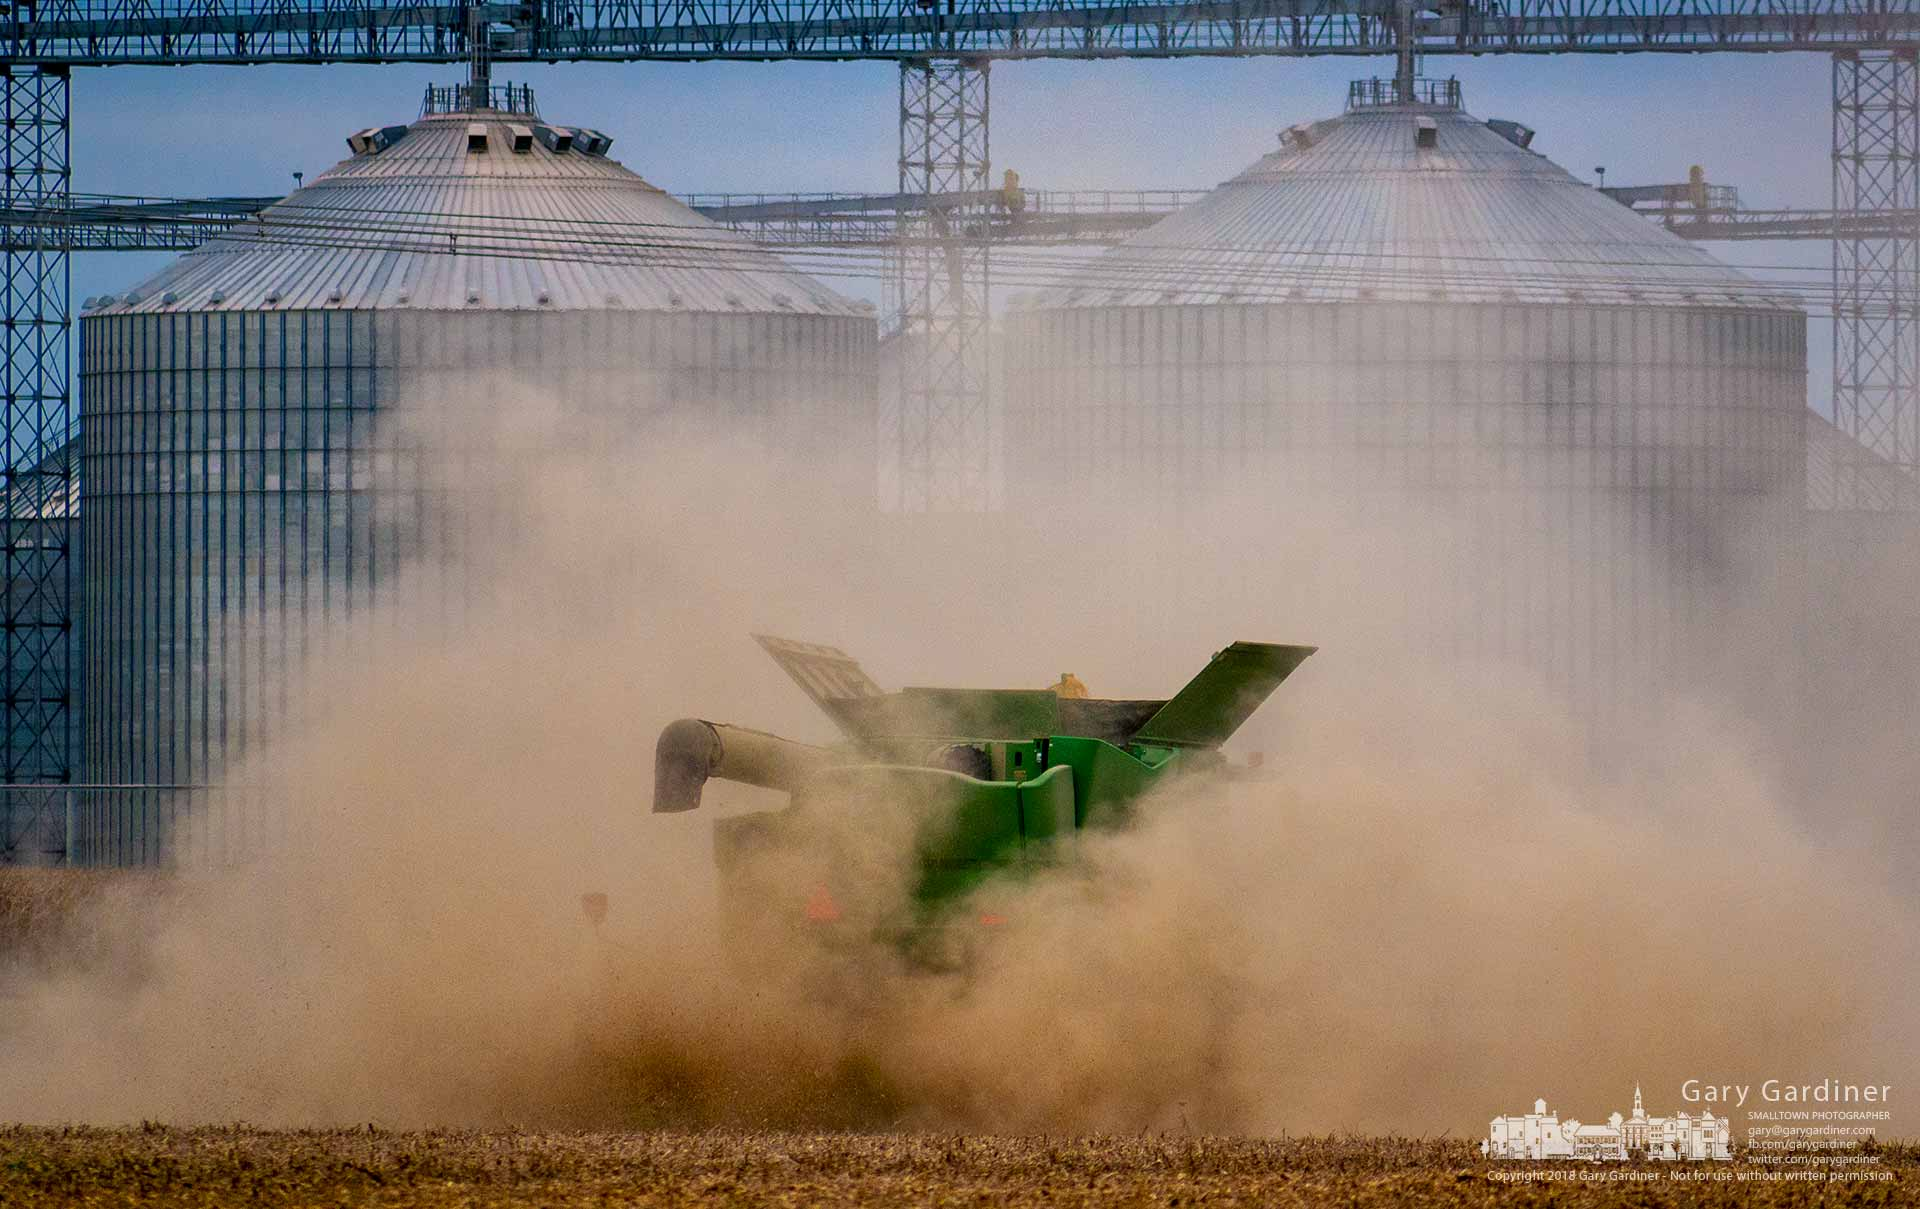 A combine throws up a cloud of soybean dust as it runs through a field at the grain elevator near Croton, Ohio. My Final Photo for Oct. 19, 2018.